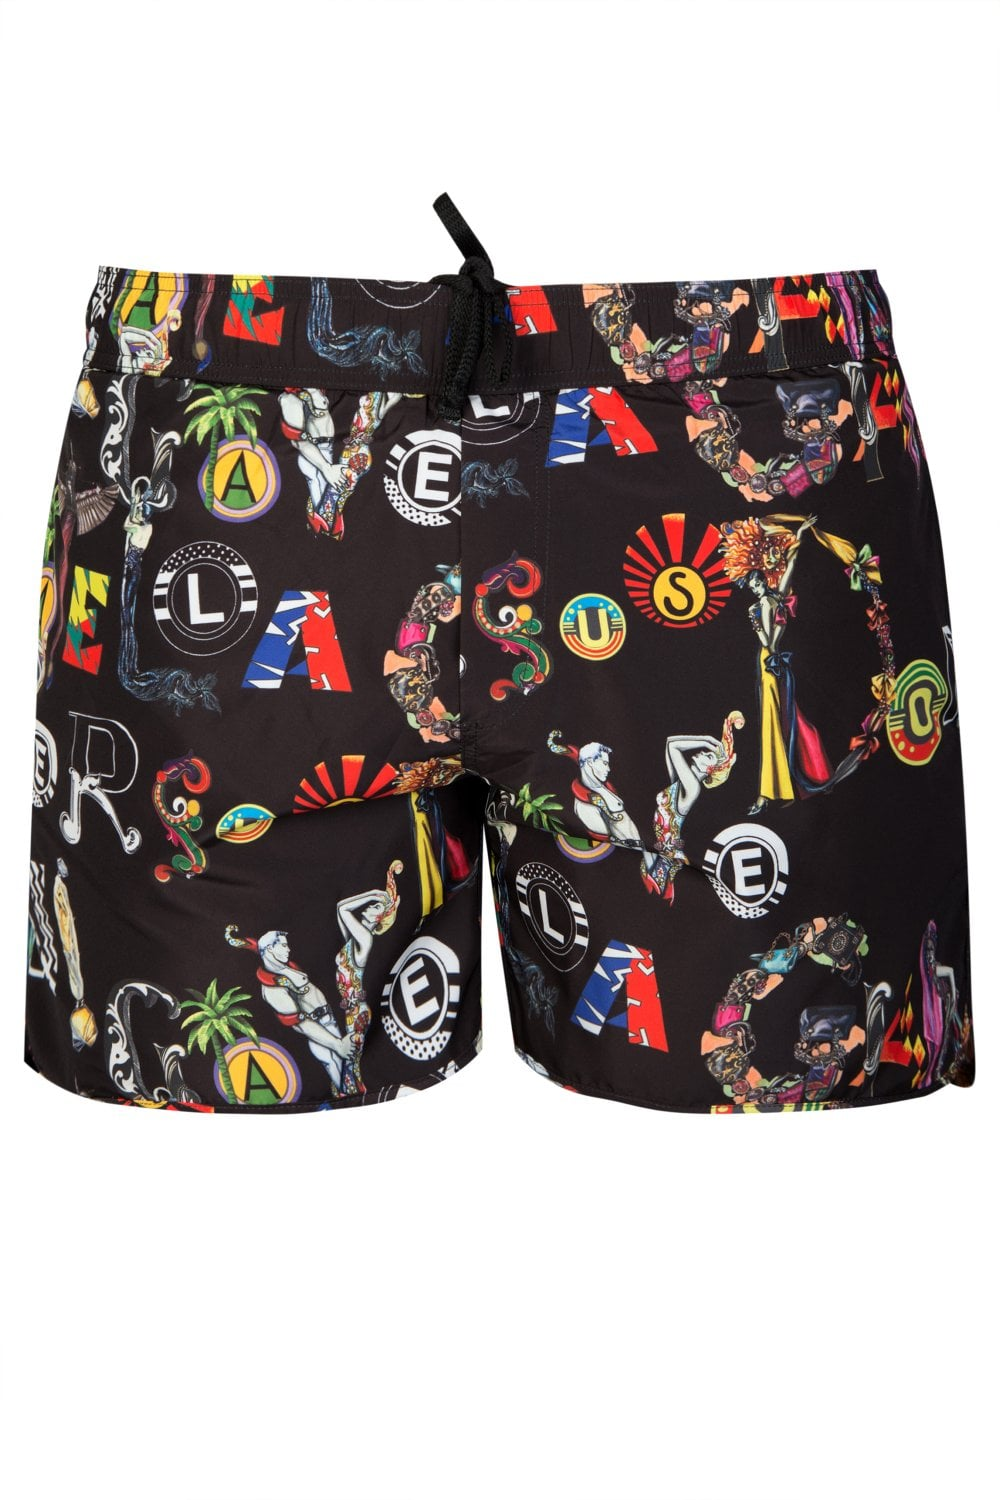 06cac10bfe VERSACE Versus Versace Gianni All Over Print Swim Shorts - Clothing from Circle  Fashion UK